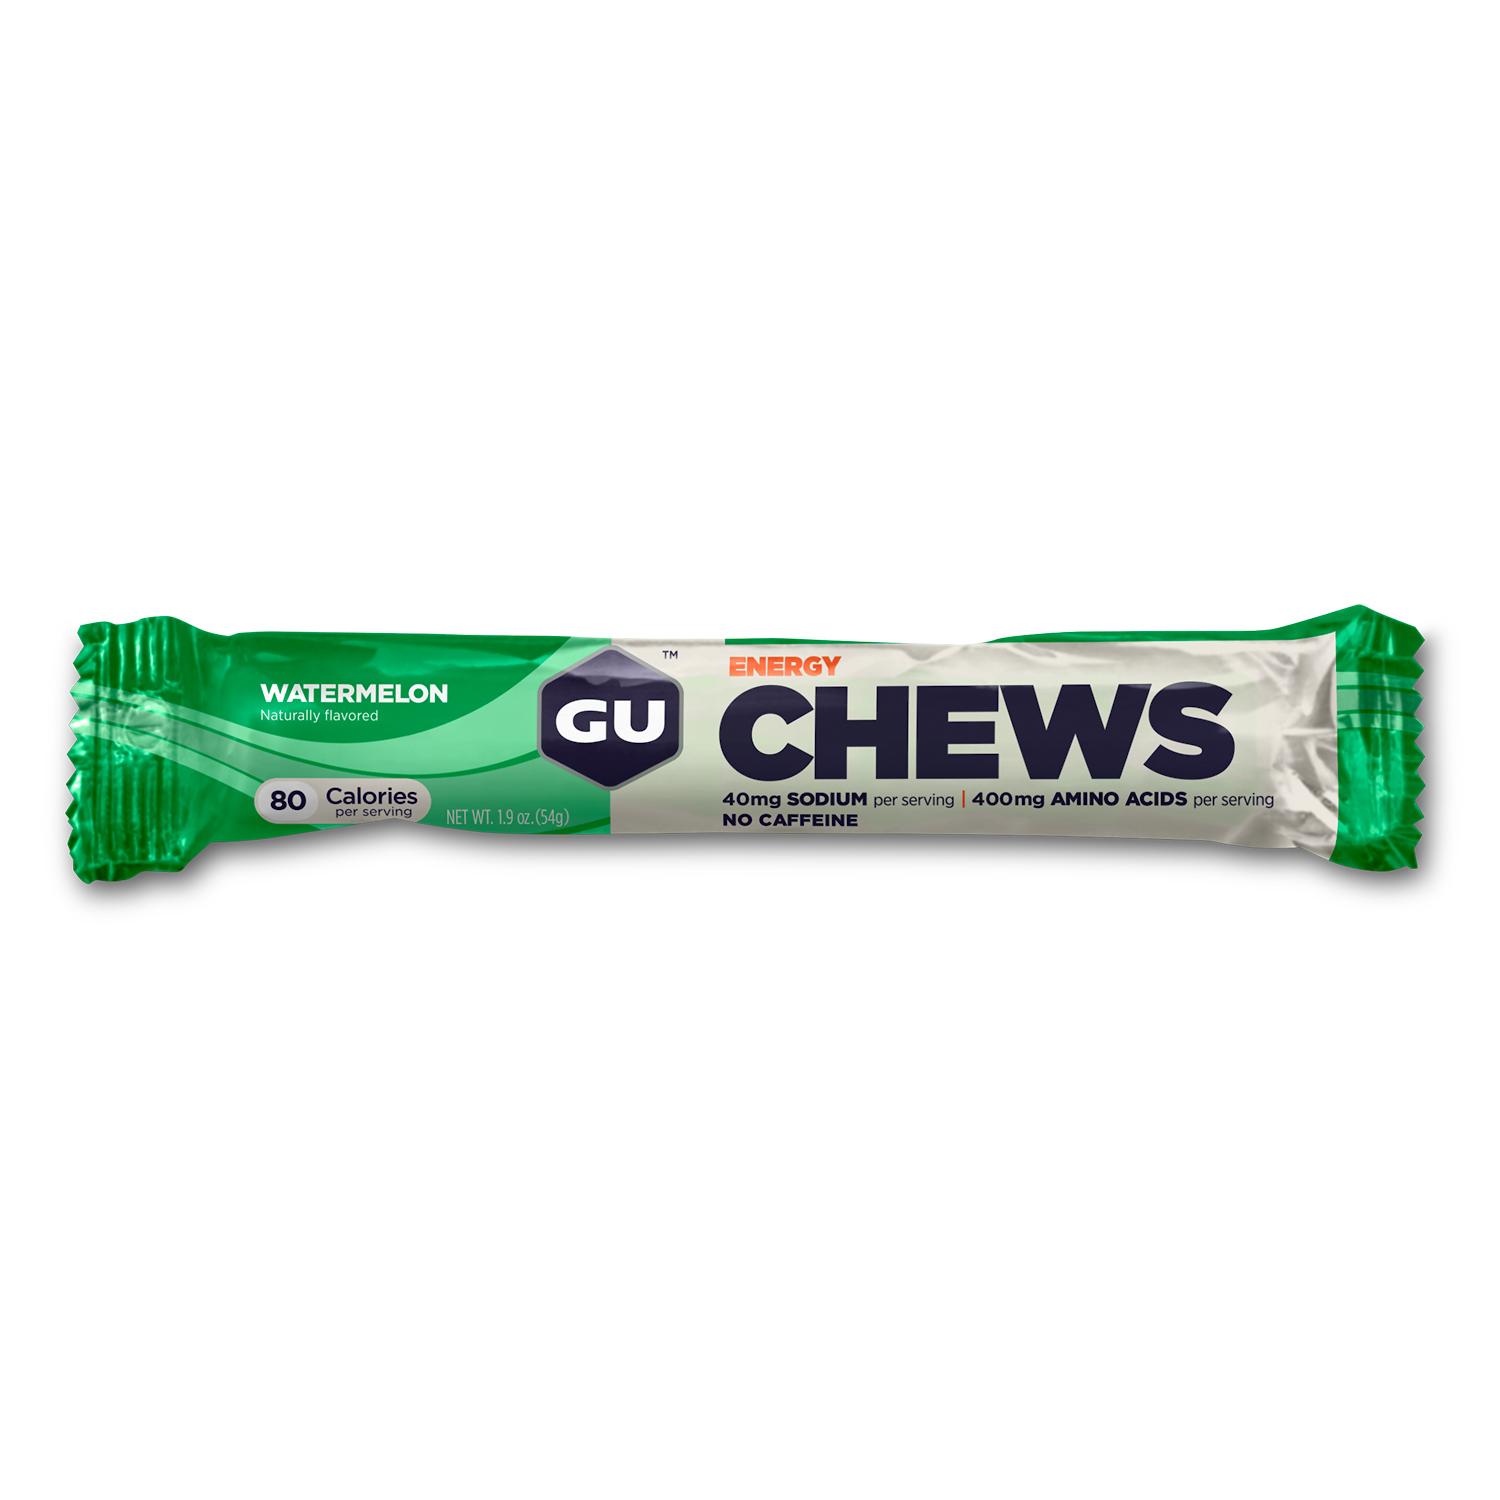 Watermelon, Chews, 18 Pkt Box (Double serve)